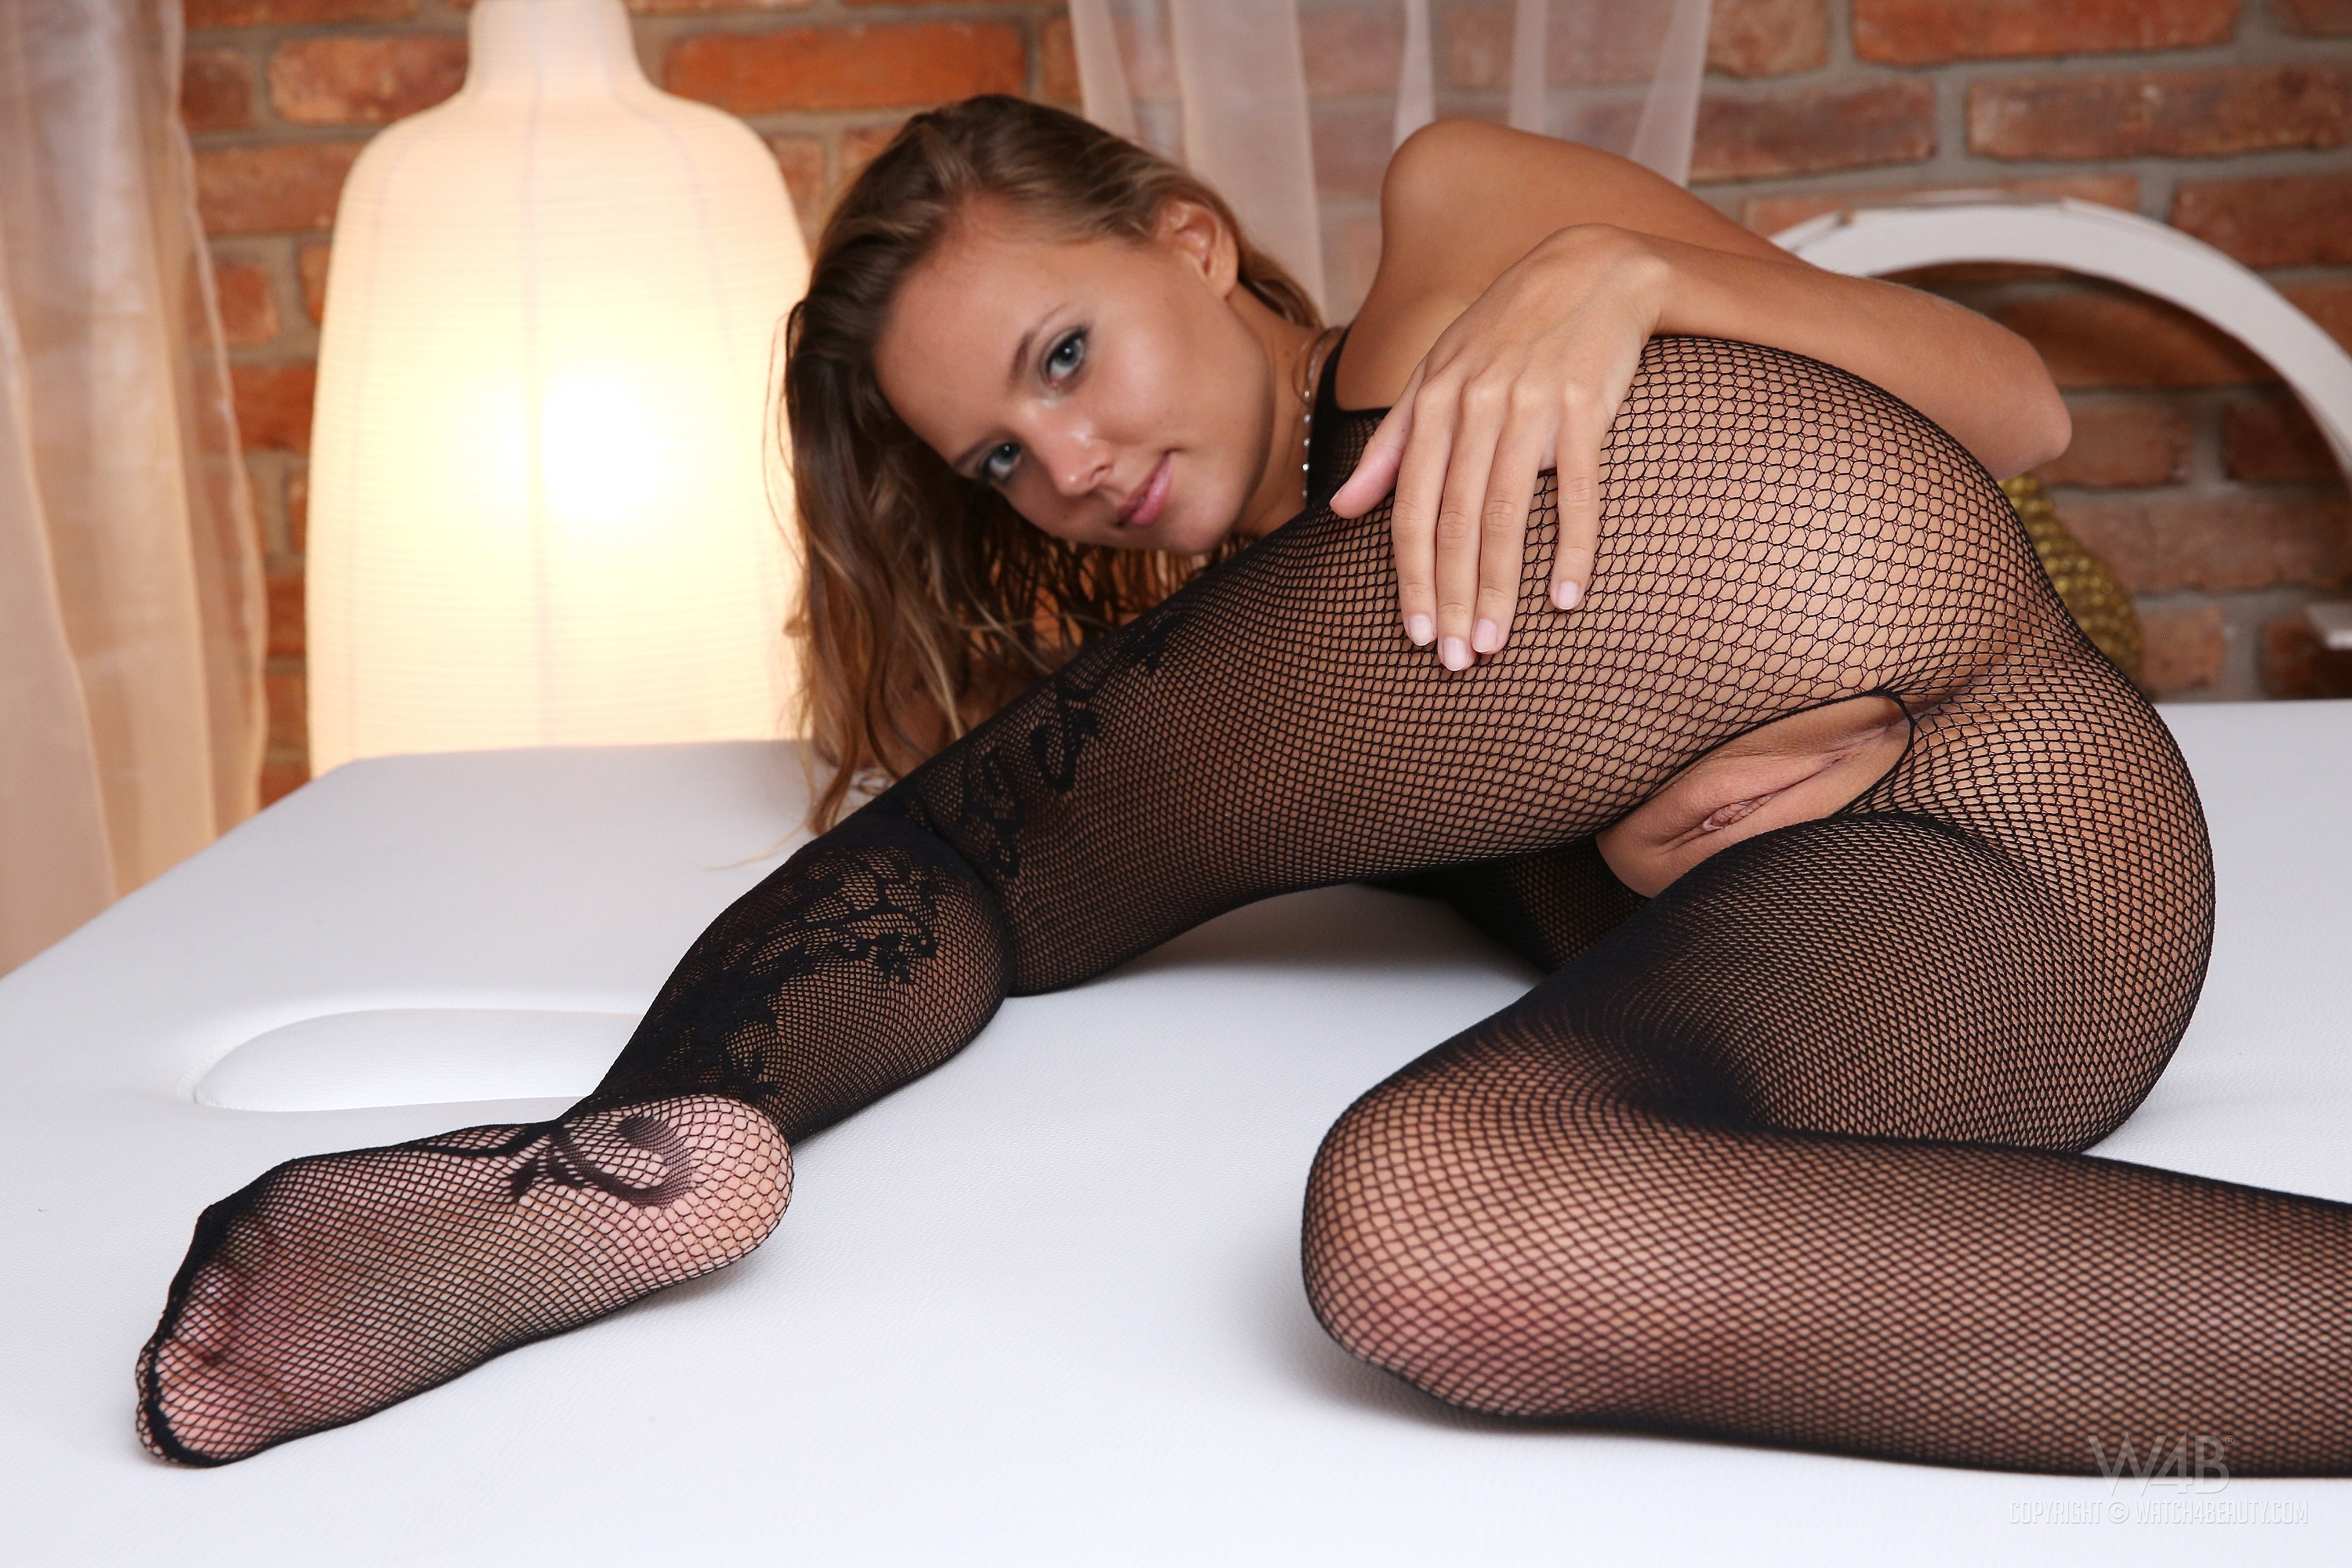 hot naked ass stockings pussy young